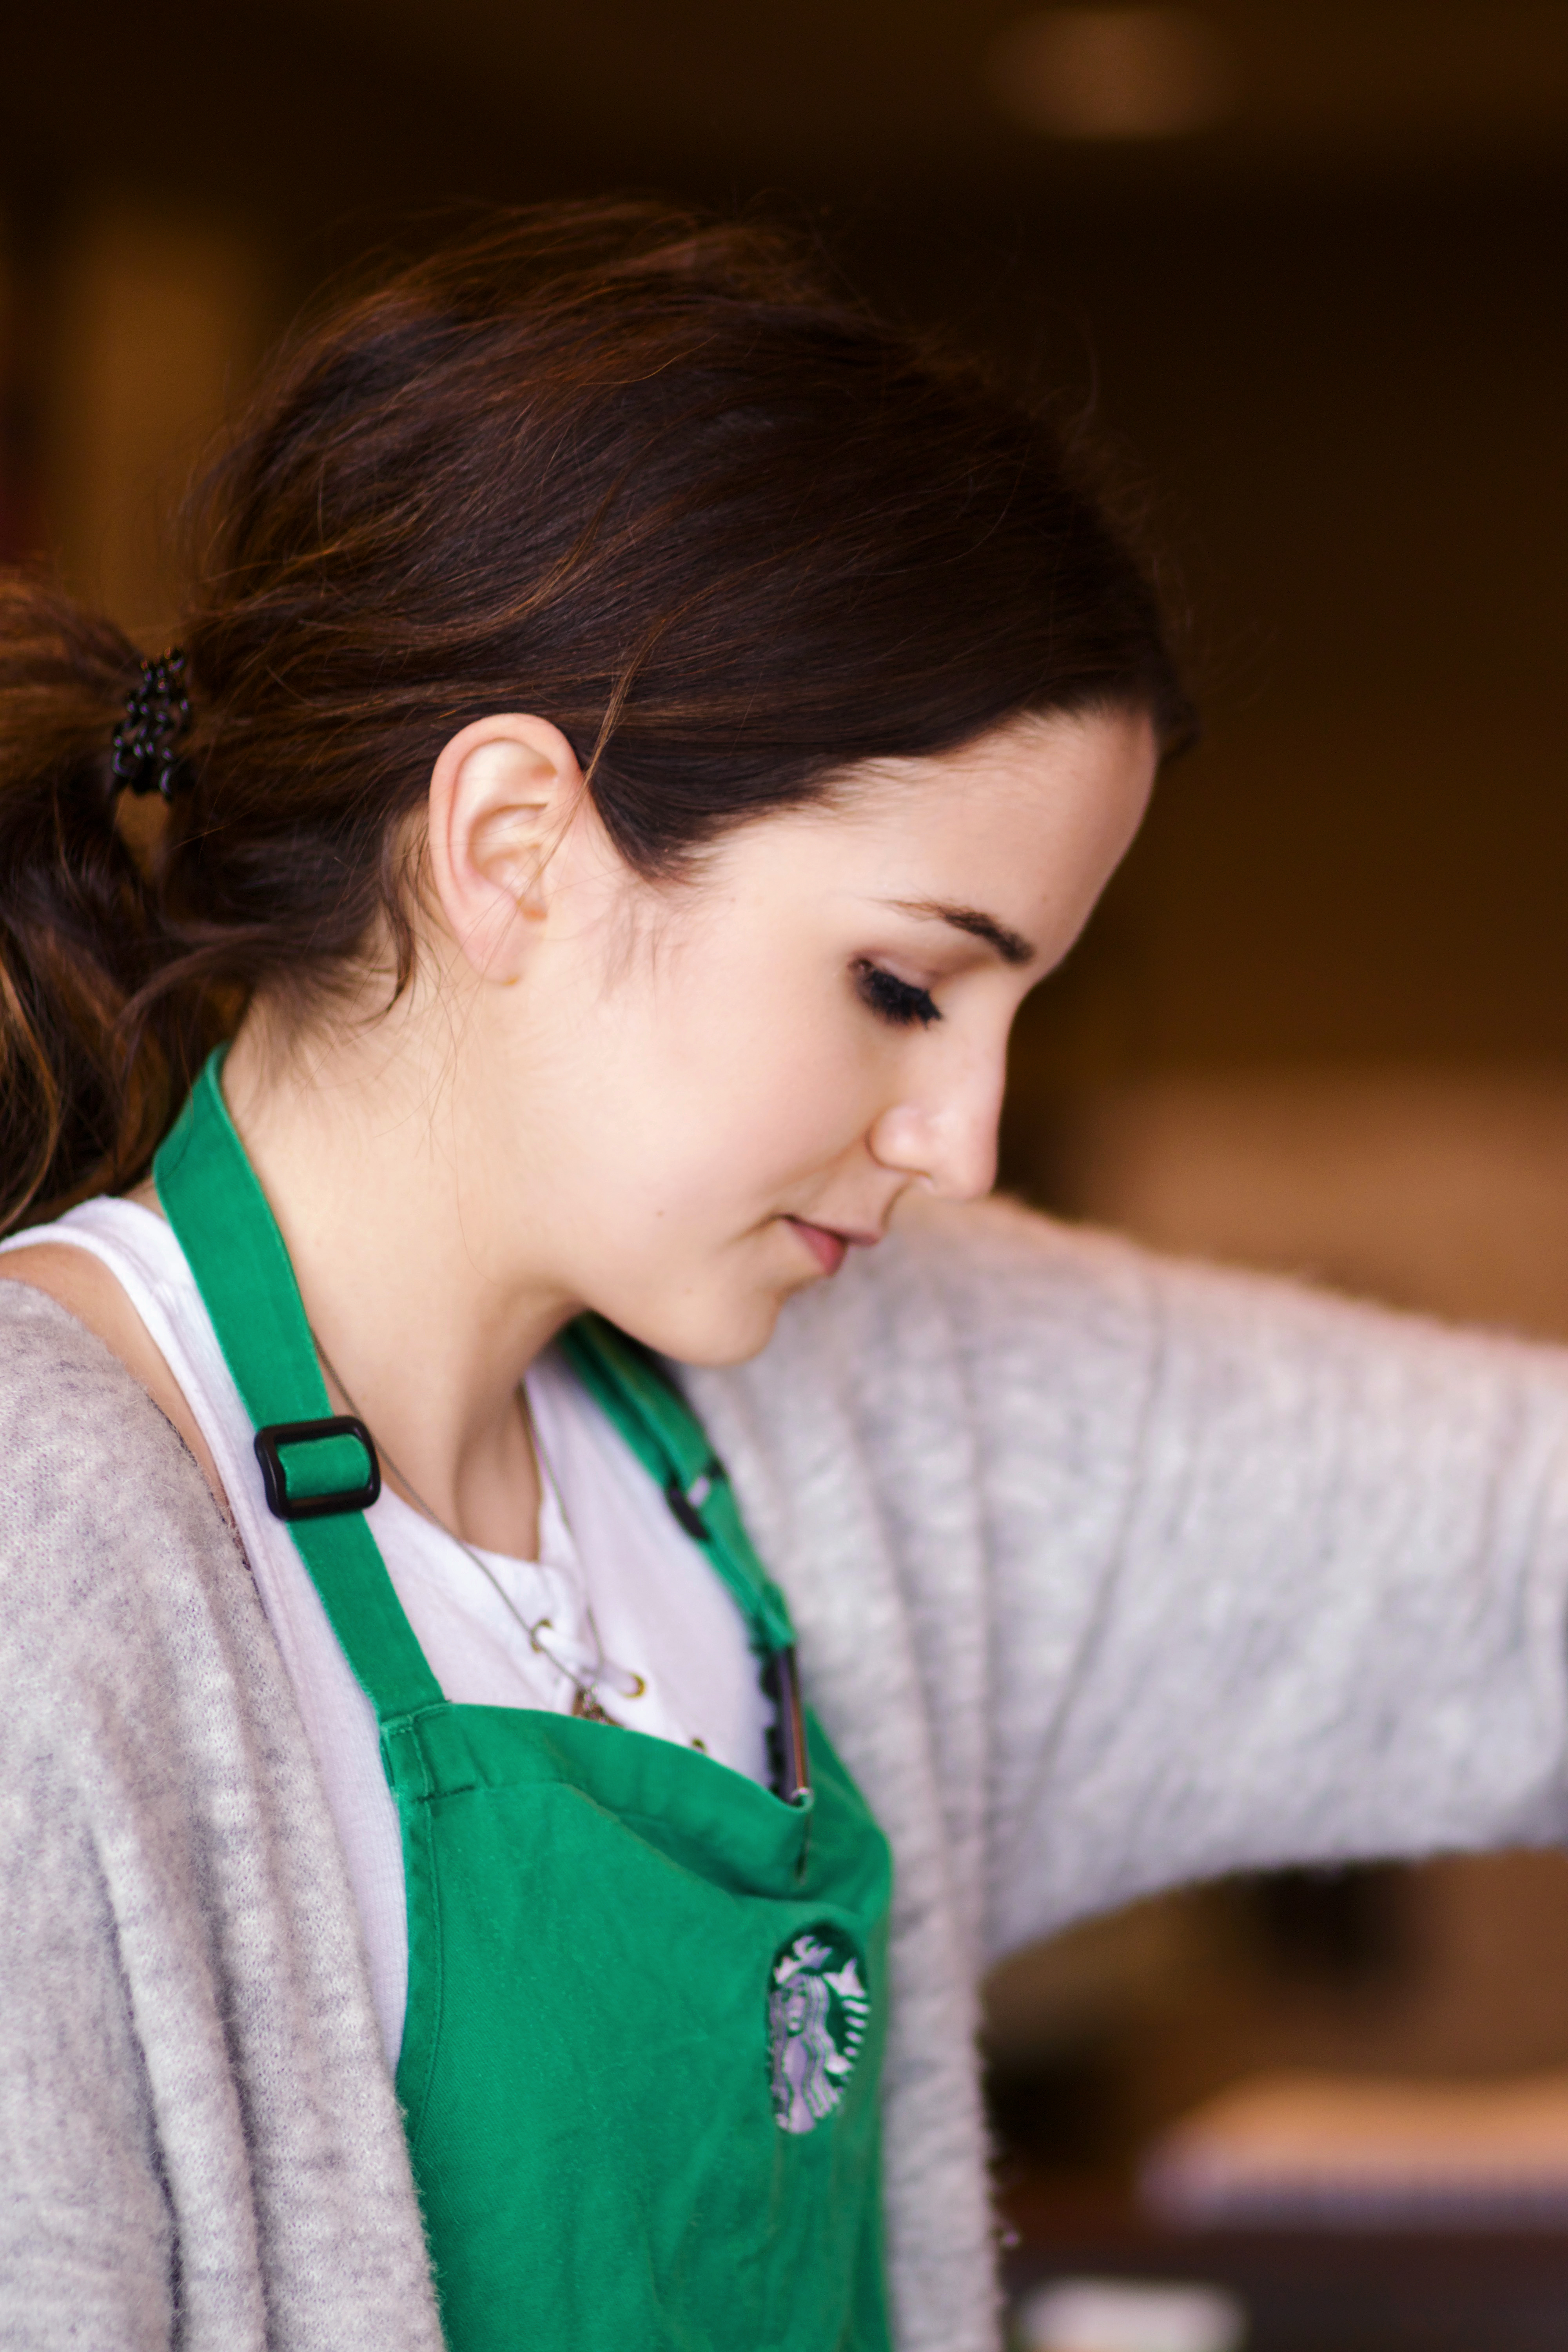 Top 5 Favourite Things About Being a Barista